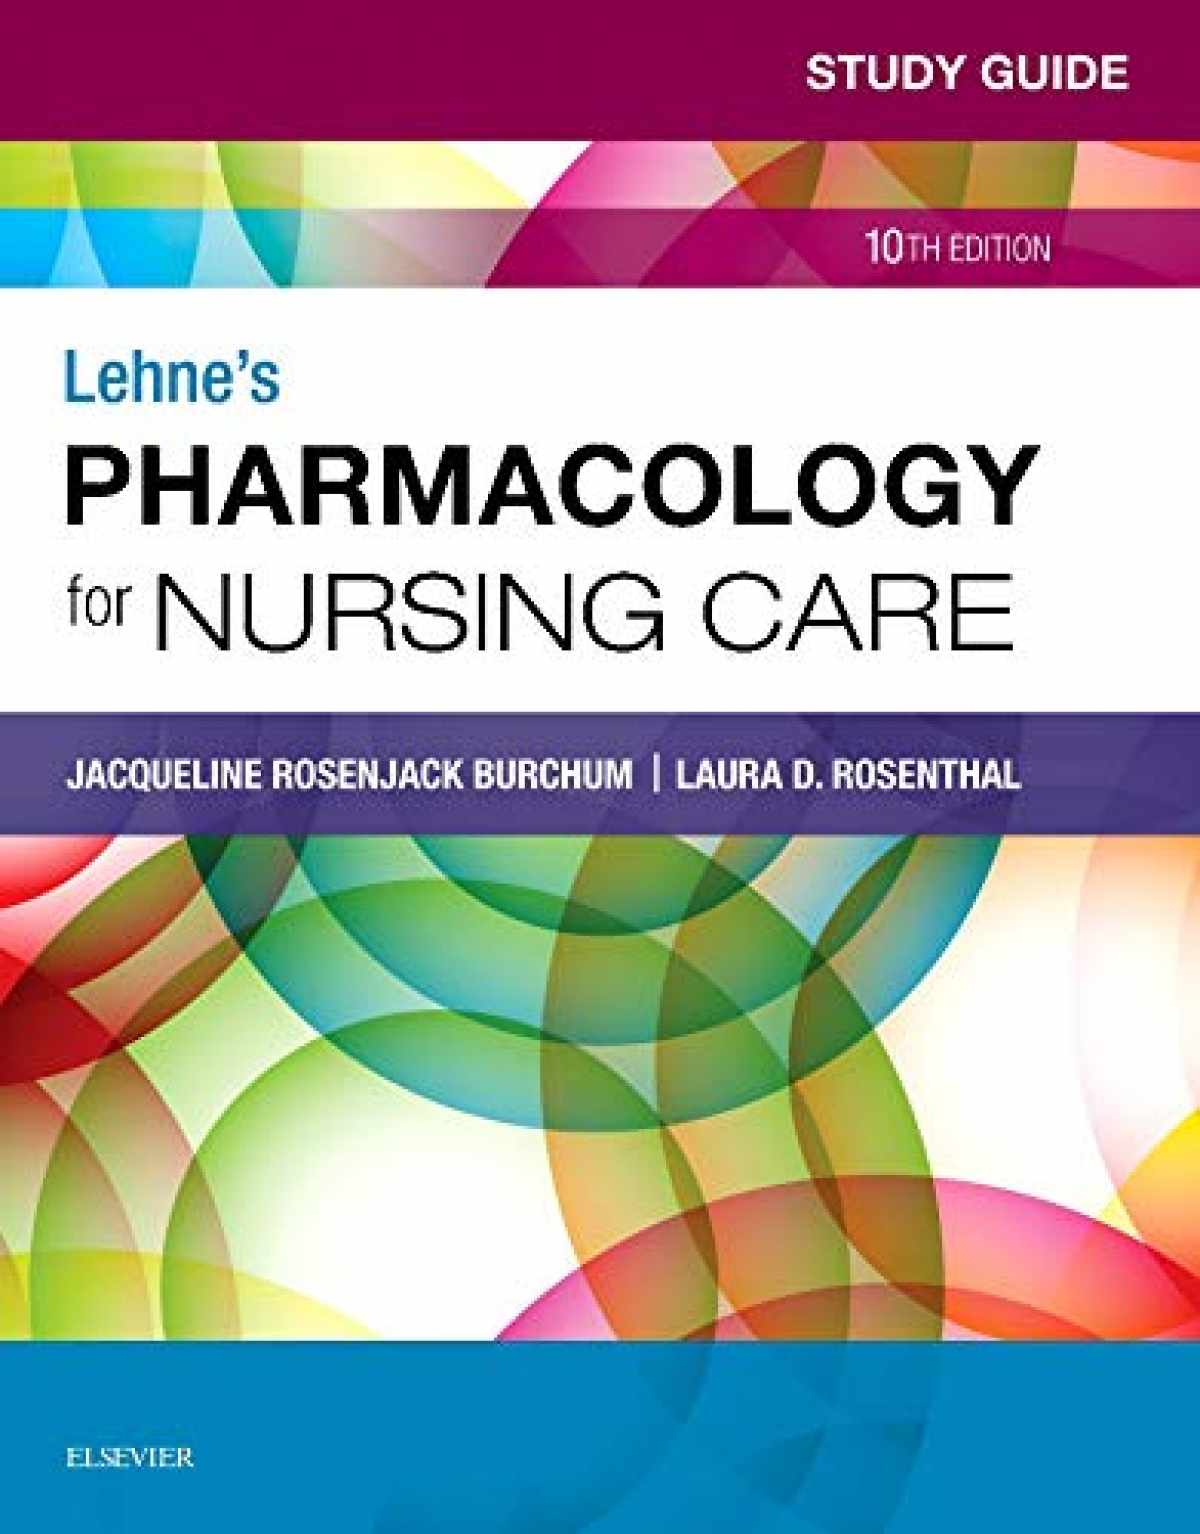 Sell, Buy or Rent Study Guide for Lehne's Pharmacology for